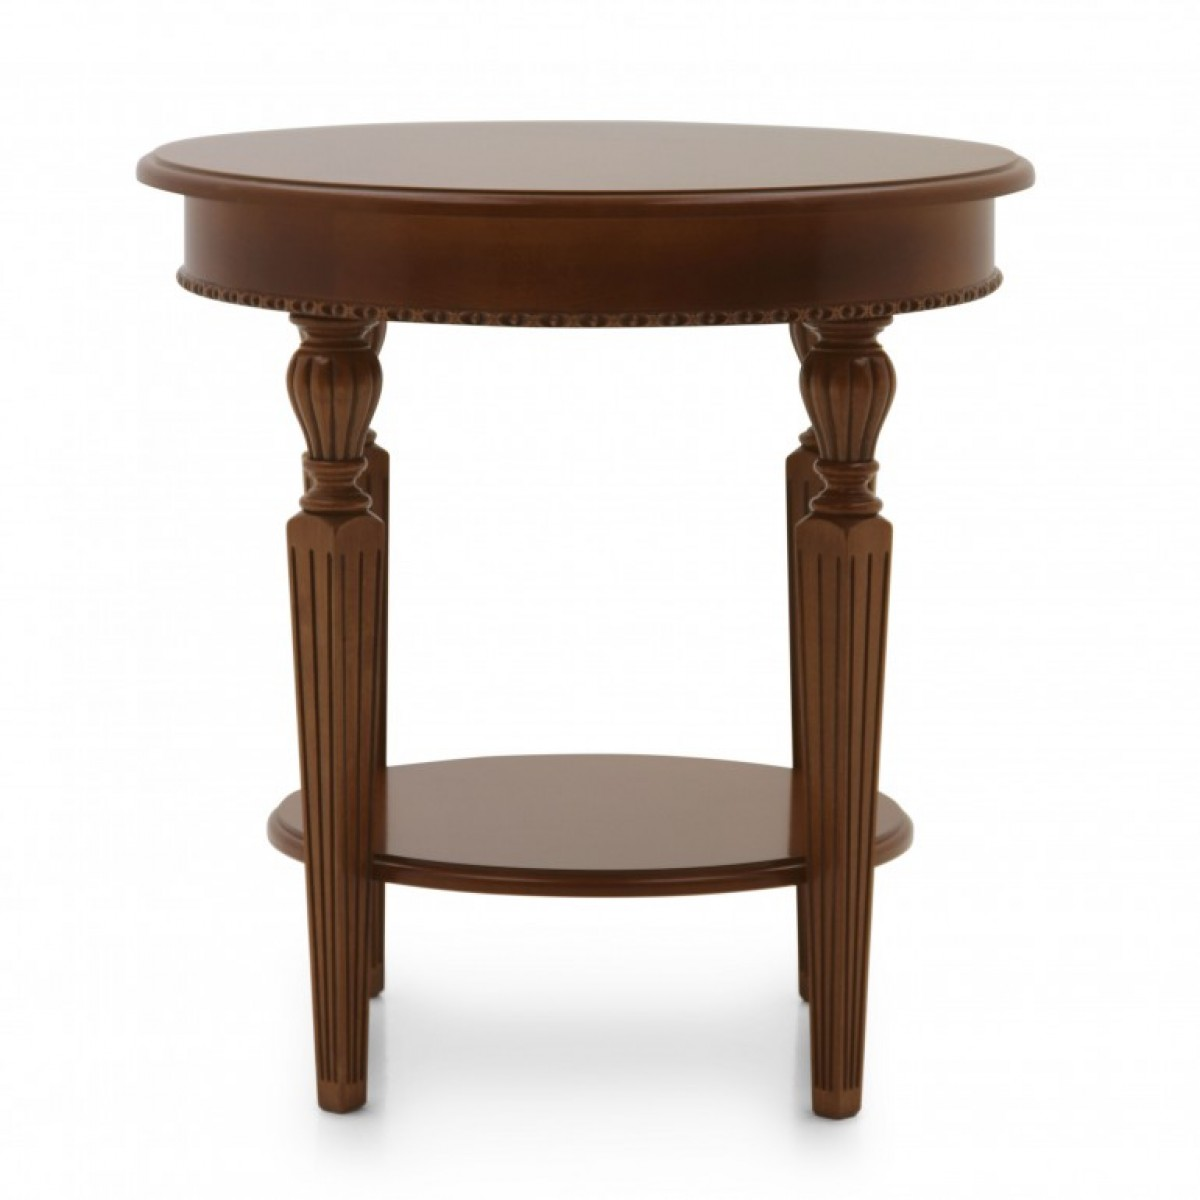 2797 classic style wood table sinone1 9442